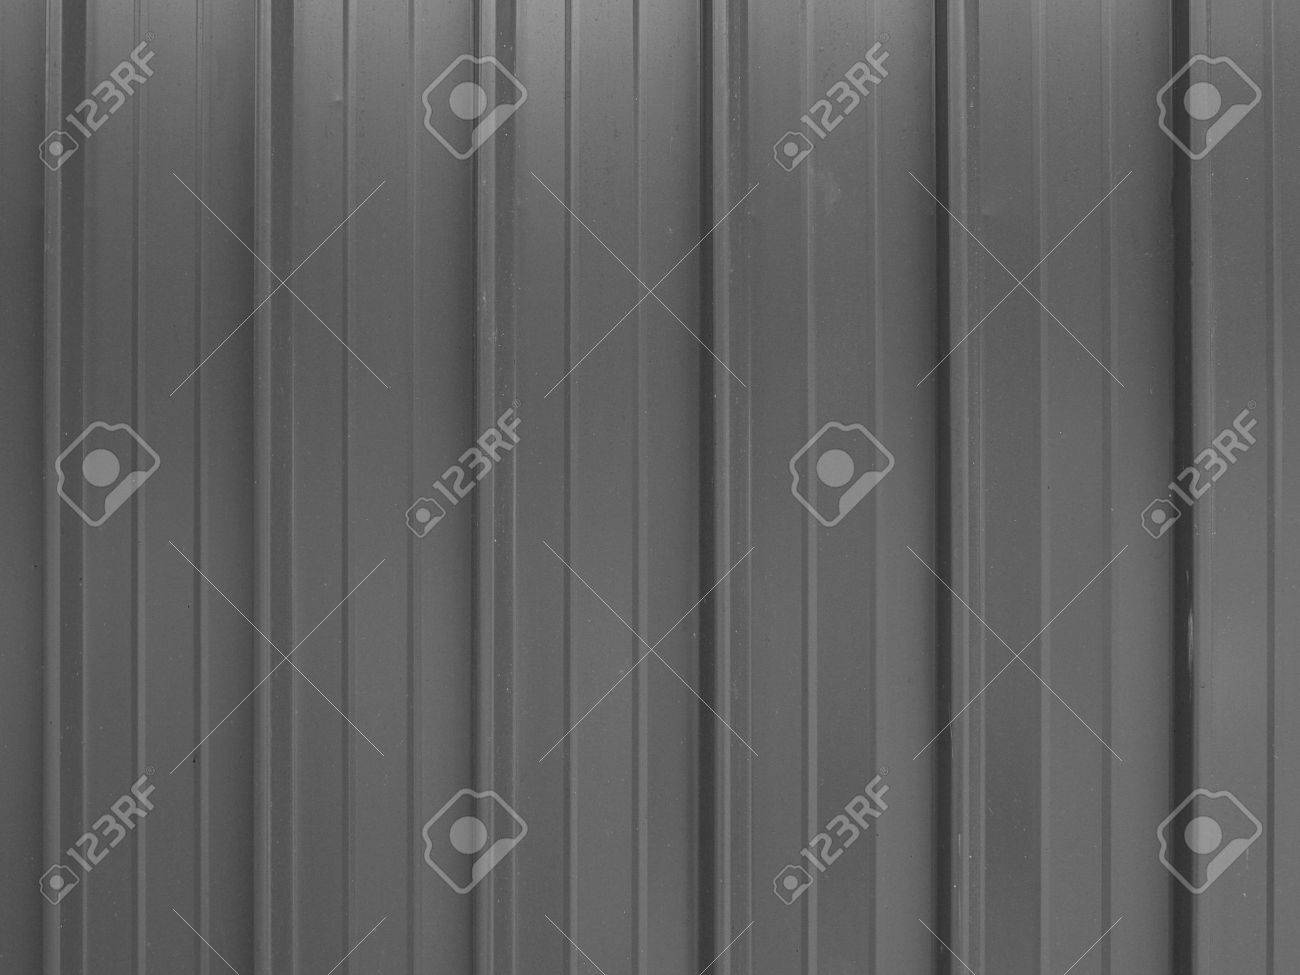 Corrugated steel sheet useful as a background Stock Photo - 6093753